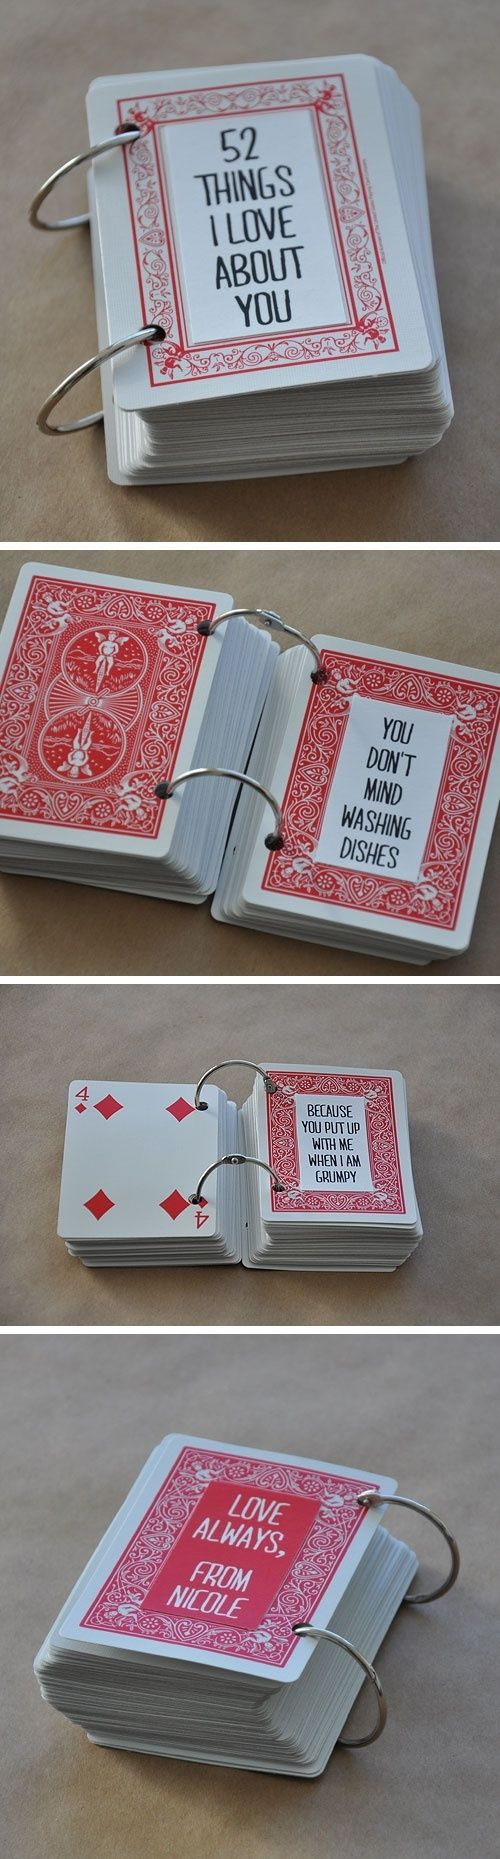 86 best DIY To-Do :) images on Pinterest | Creativity, Papercraft ...